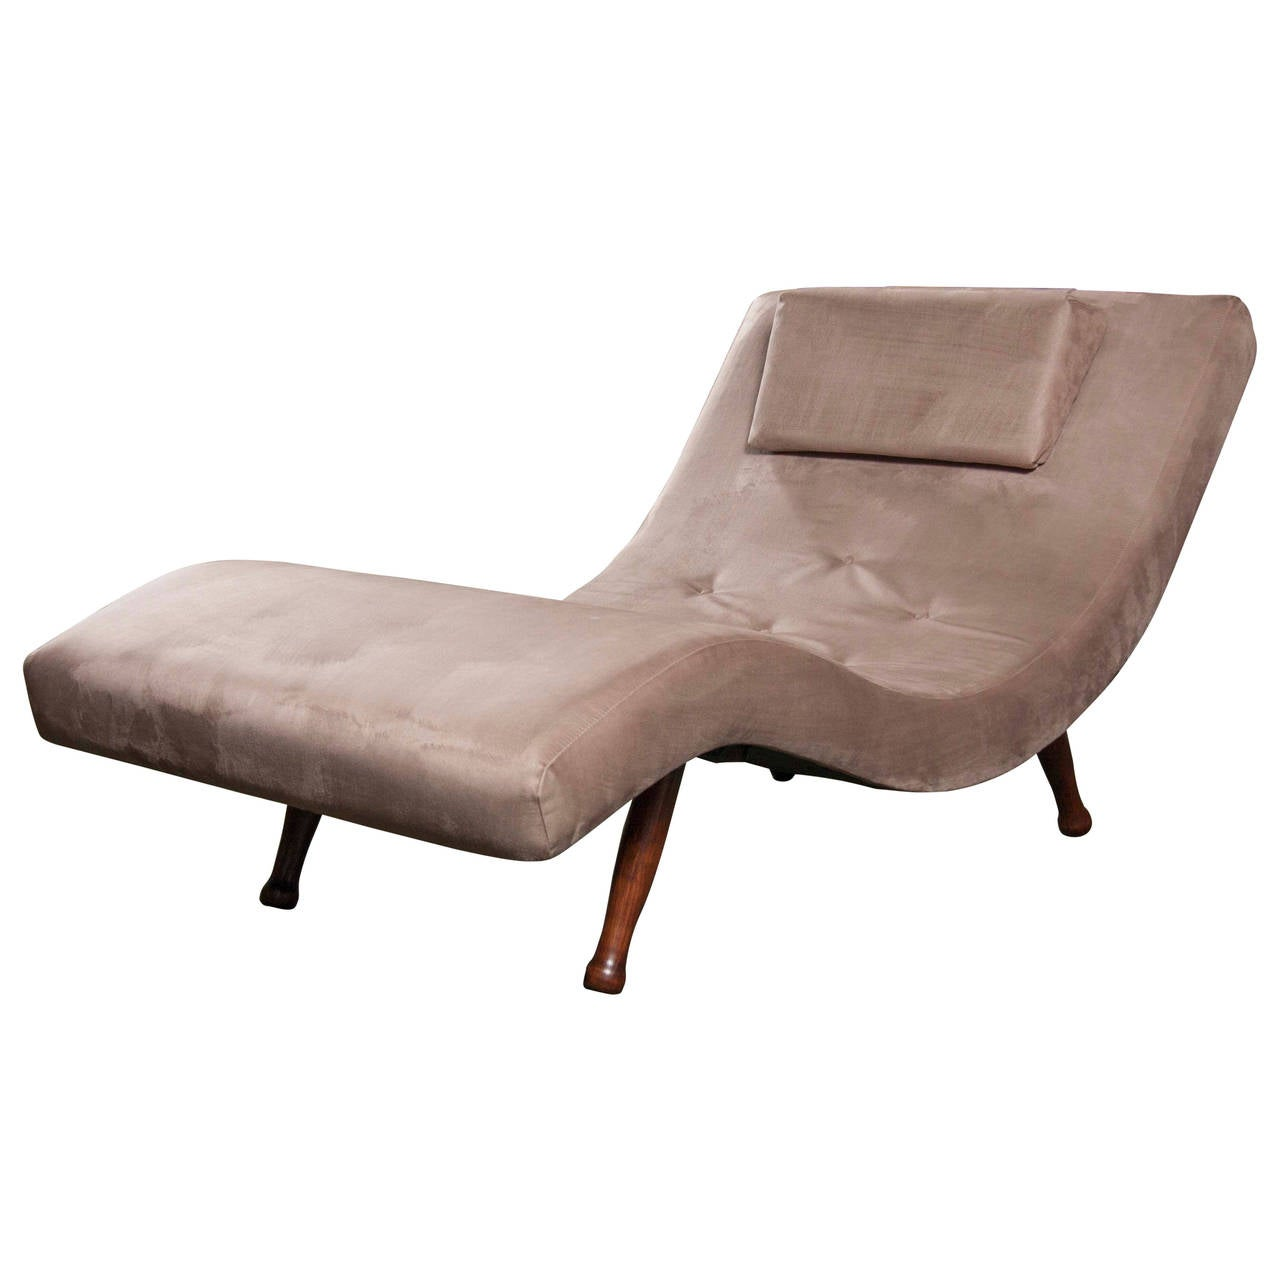 Chaise longue by adrian pearsall for sale at 1stdibs for Chaise longue furniture